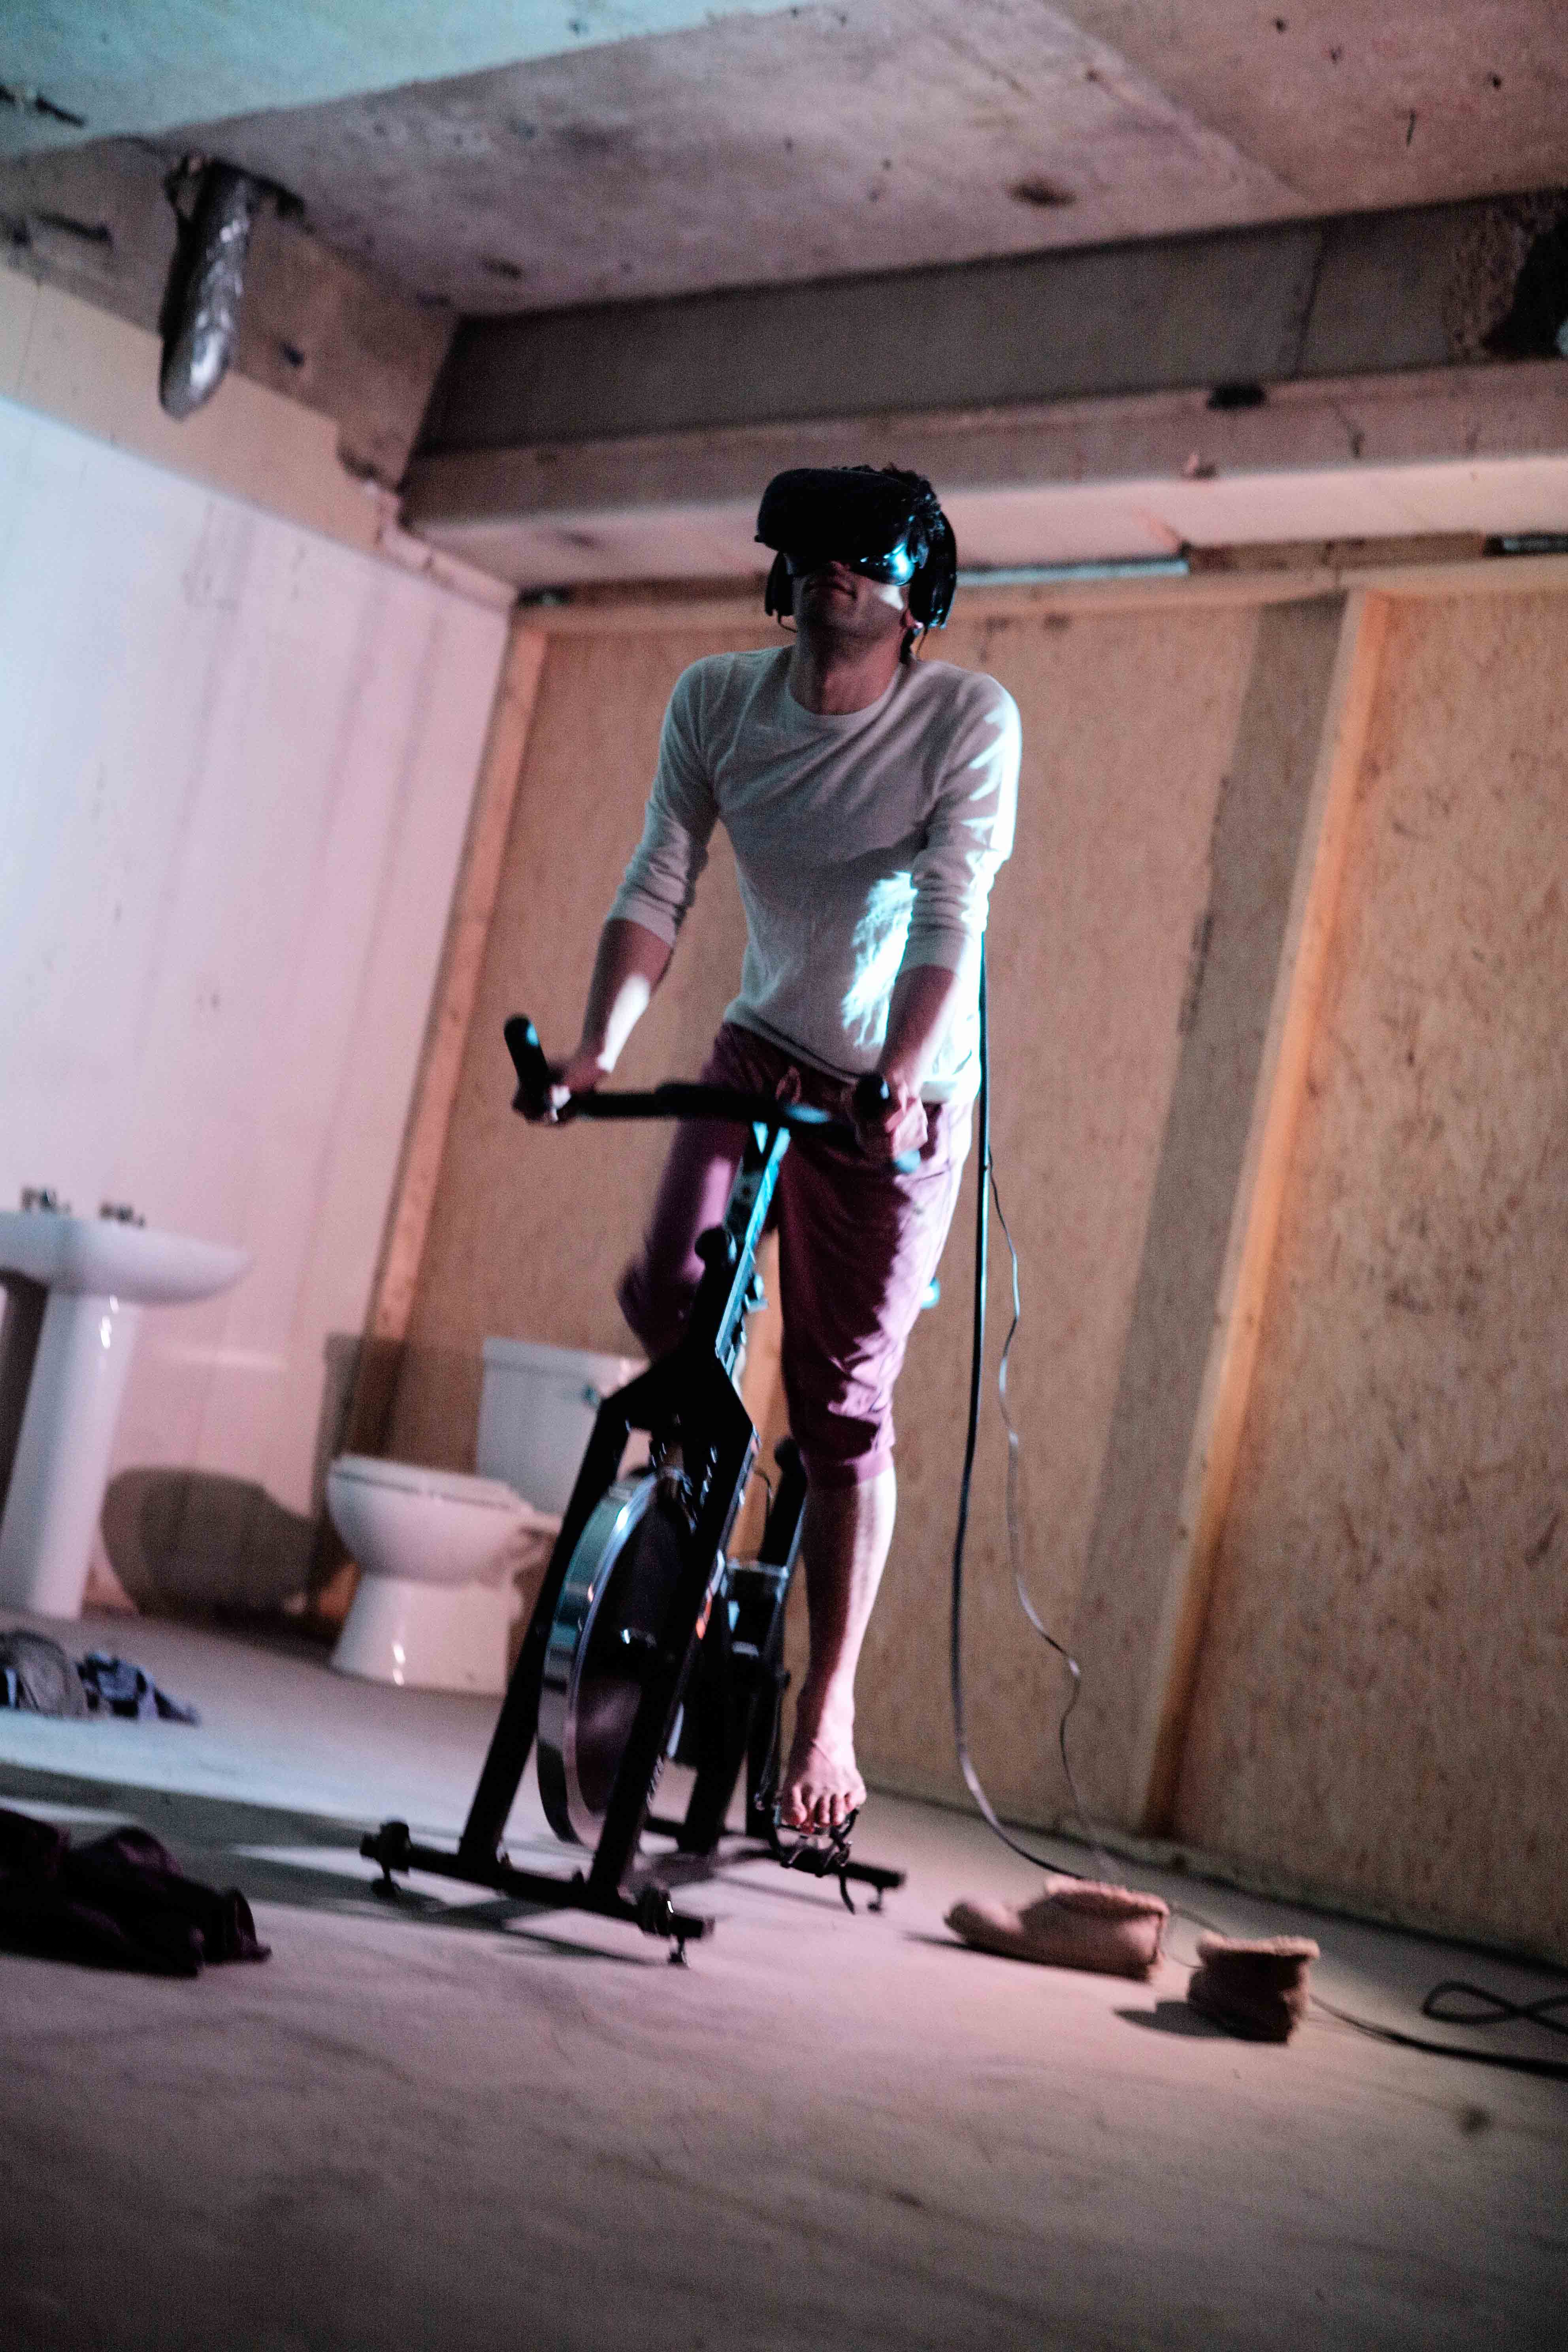 An action shot of the artist wearing the VR headset whilst using the exercise bike.